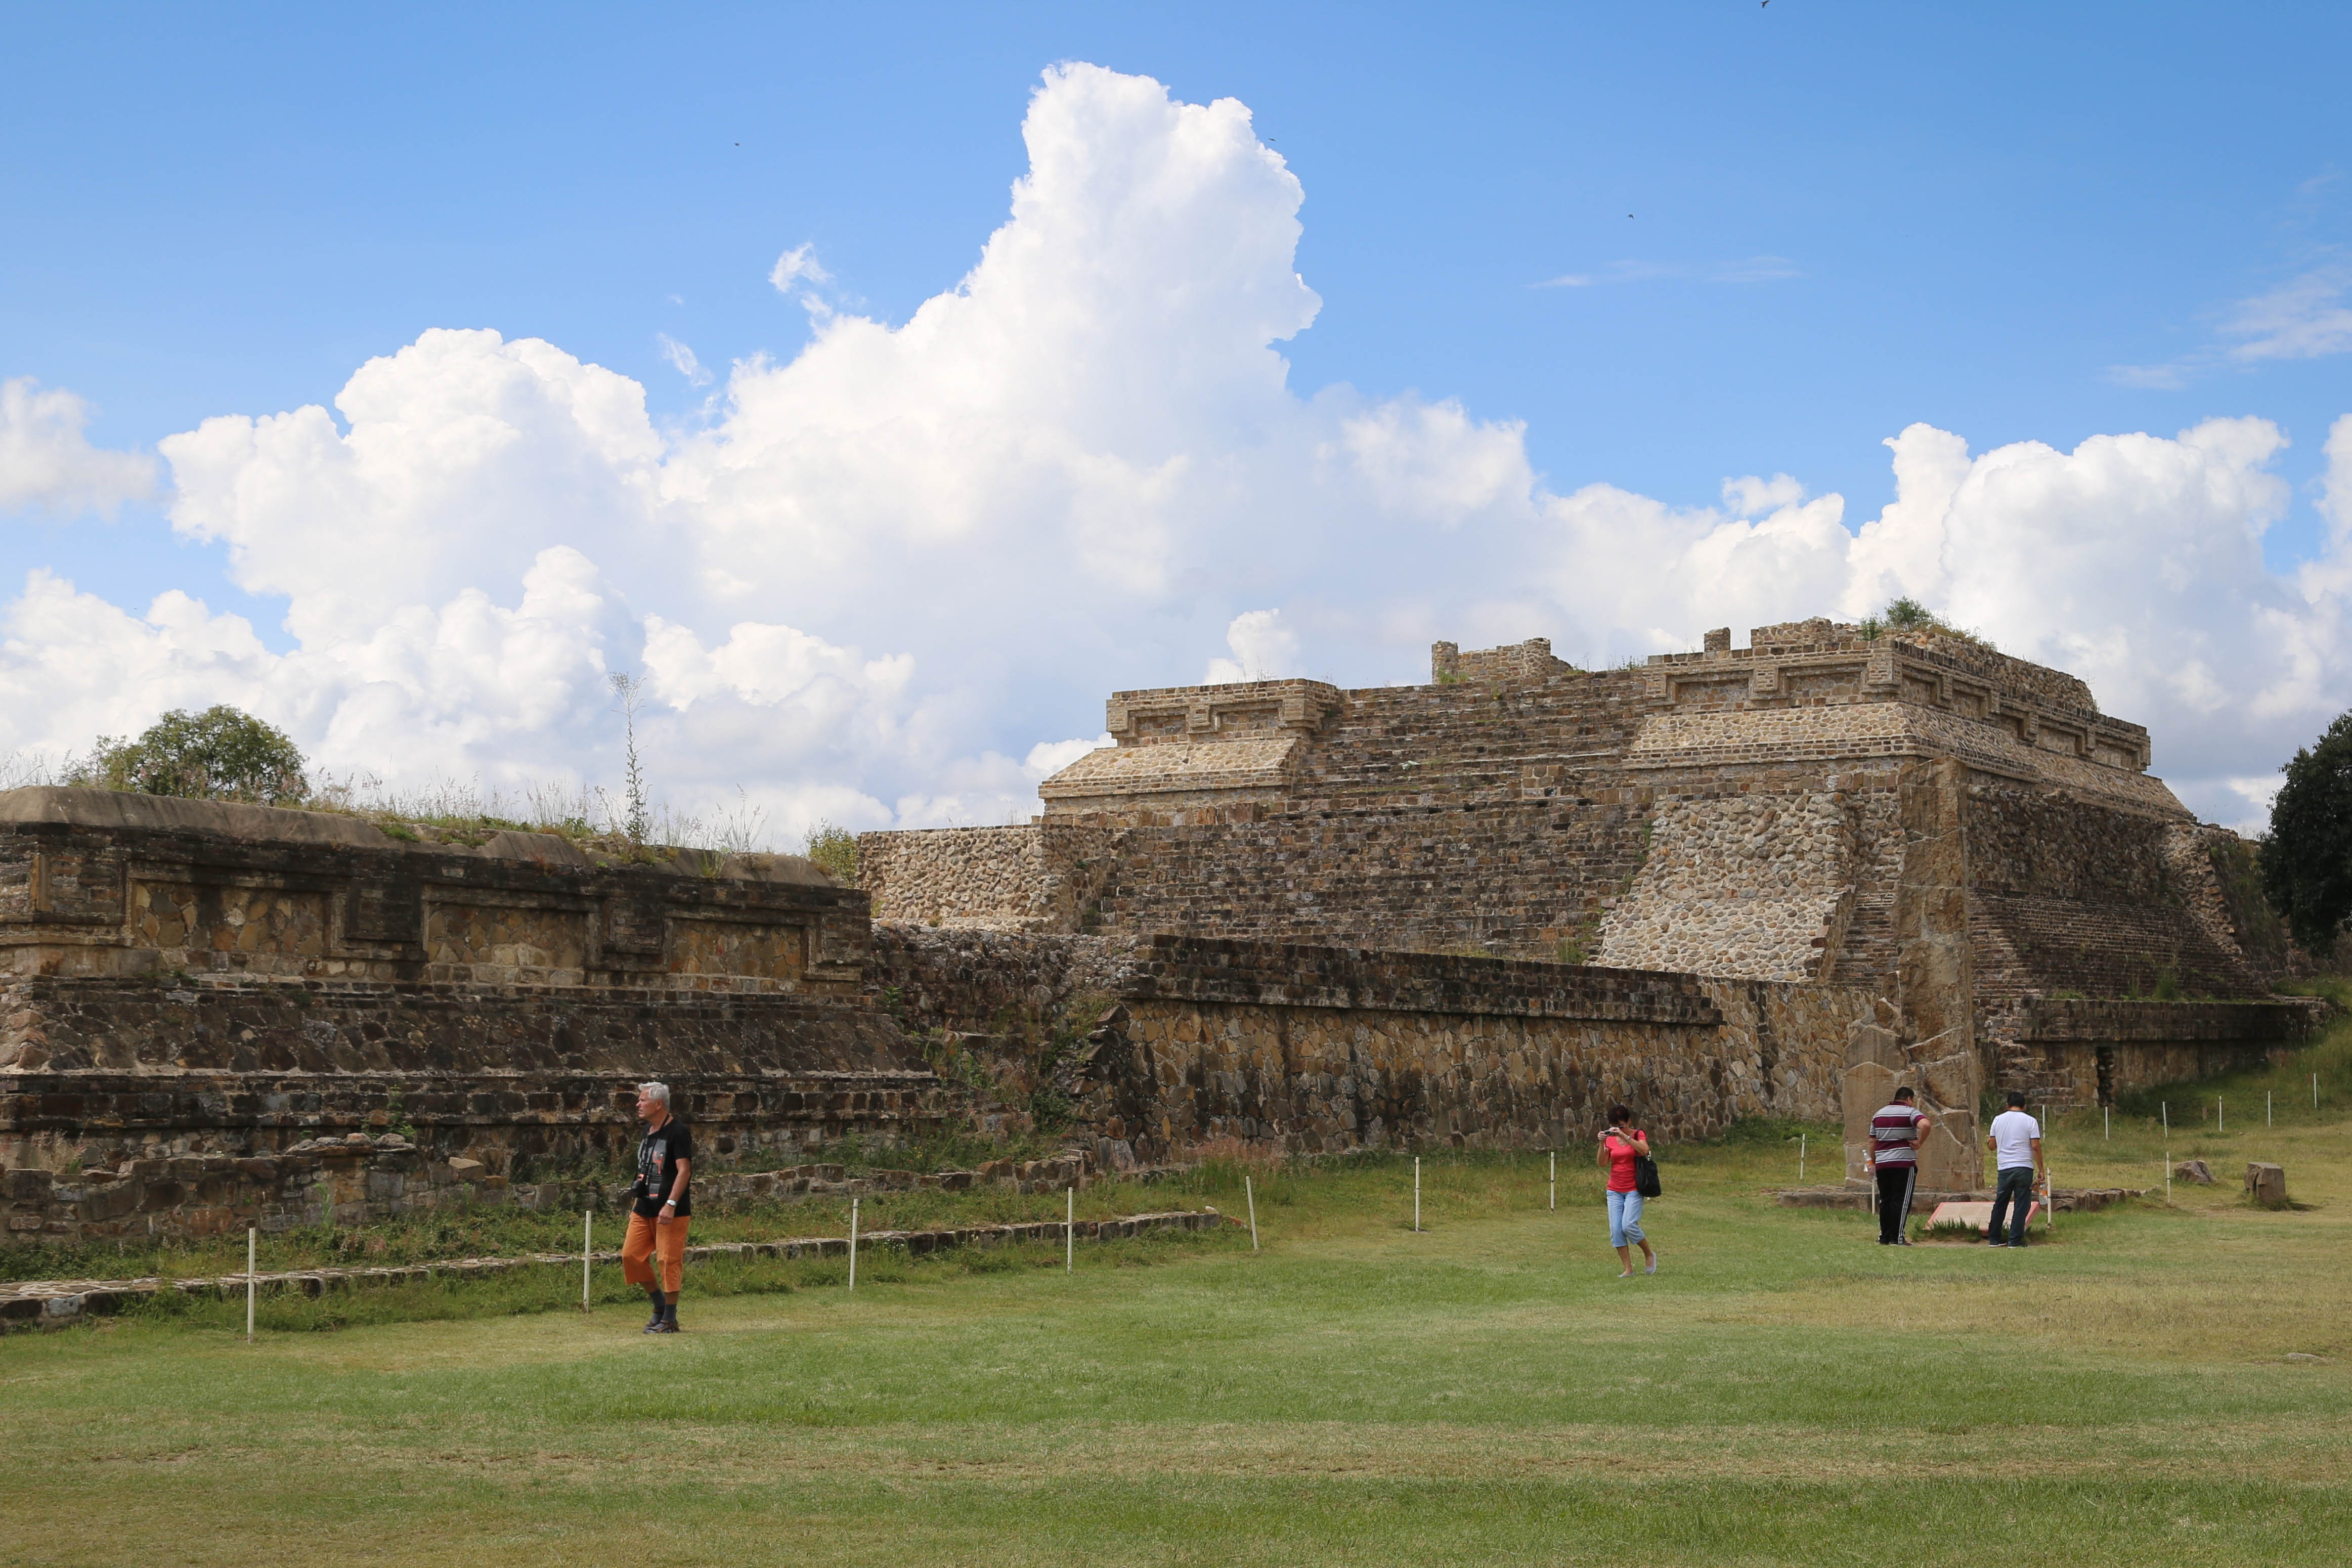 Monte Alban's location on the plateau lends a true majesty to the scene.